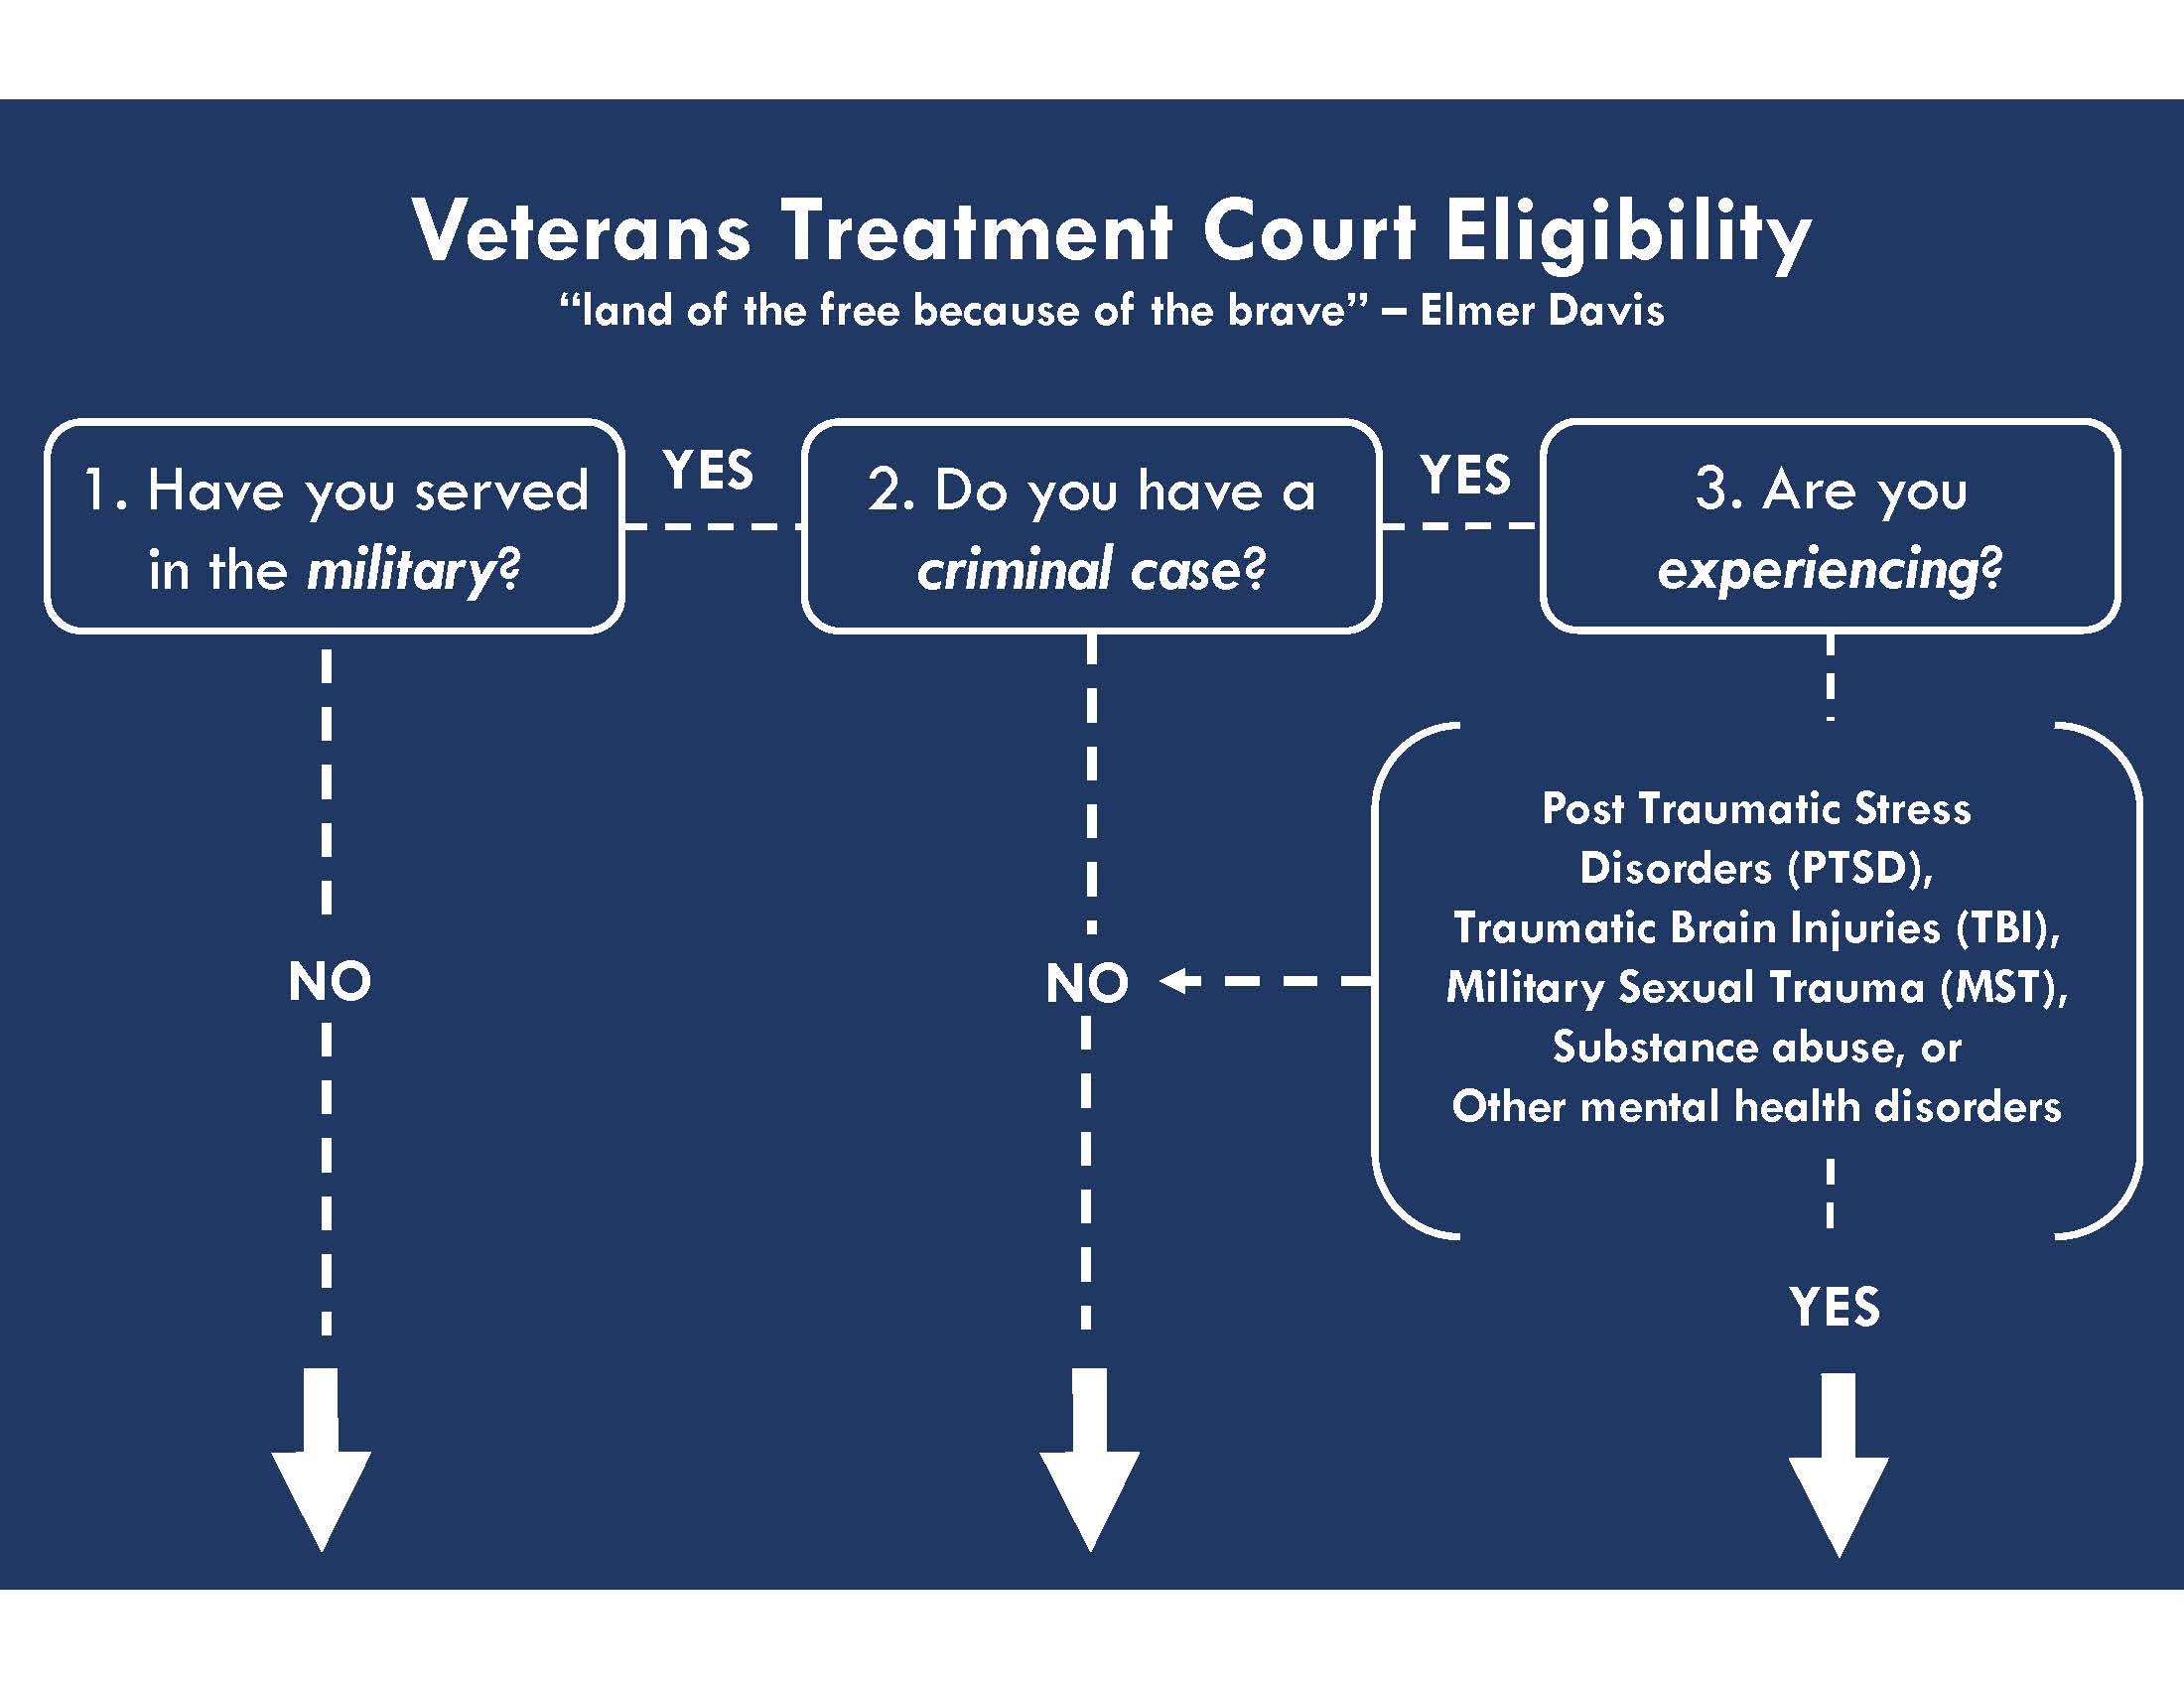 Veterans Treatment Court Eligibility Flowchart